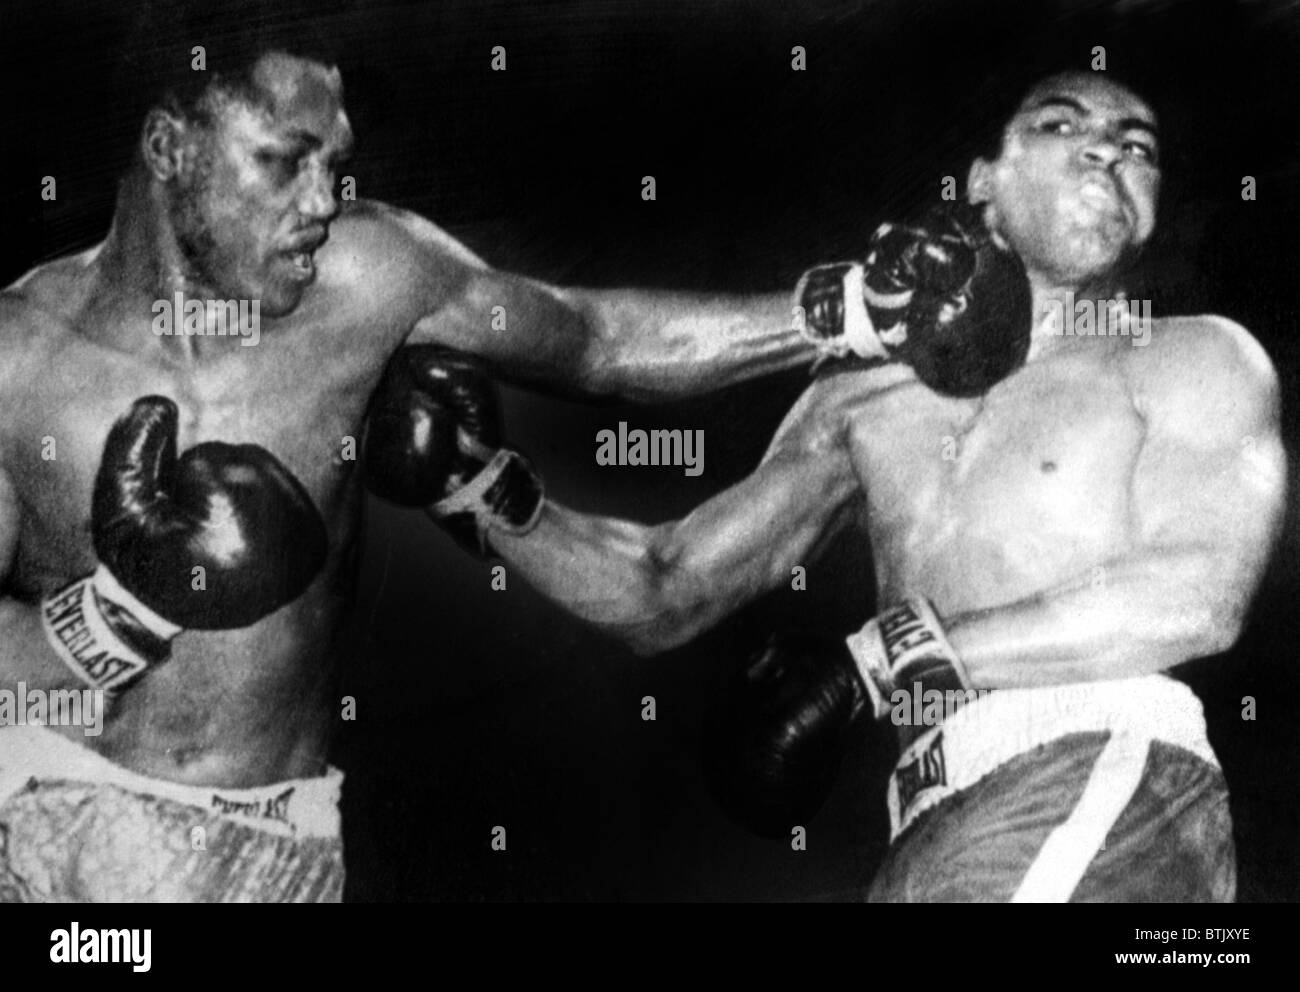 Joe Frazier vs. Muhammad Ali in their first title fight at Madison Square Garden, 1971 Stock Photo